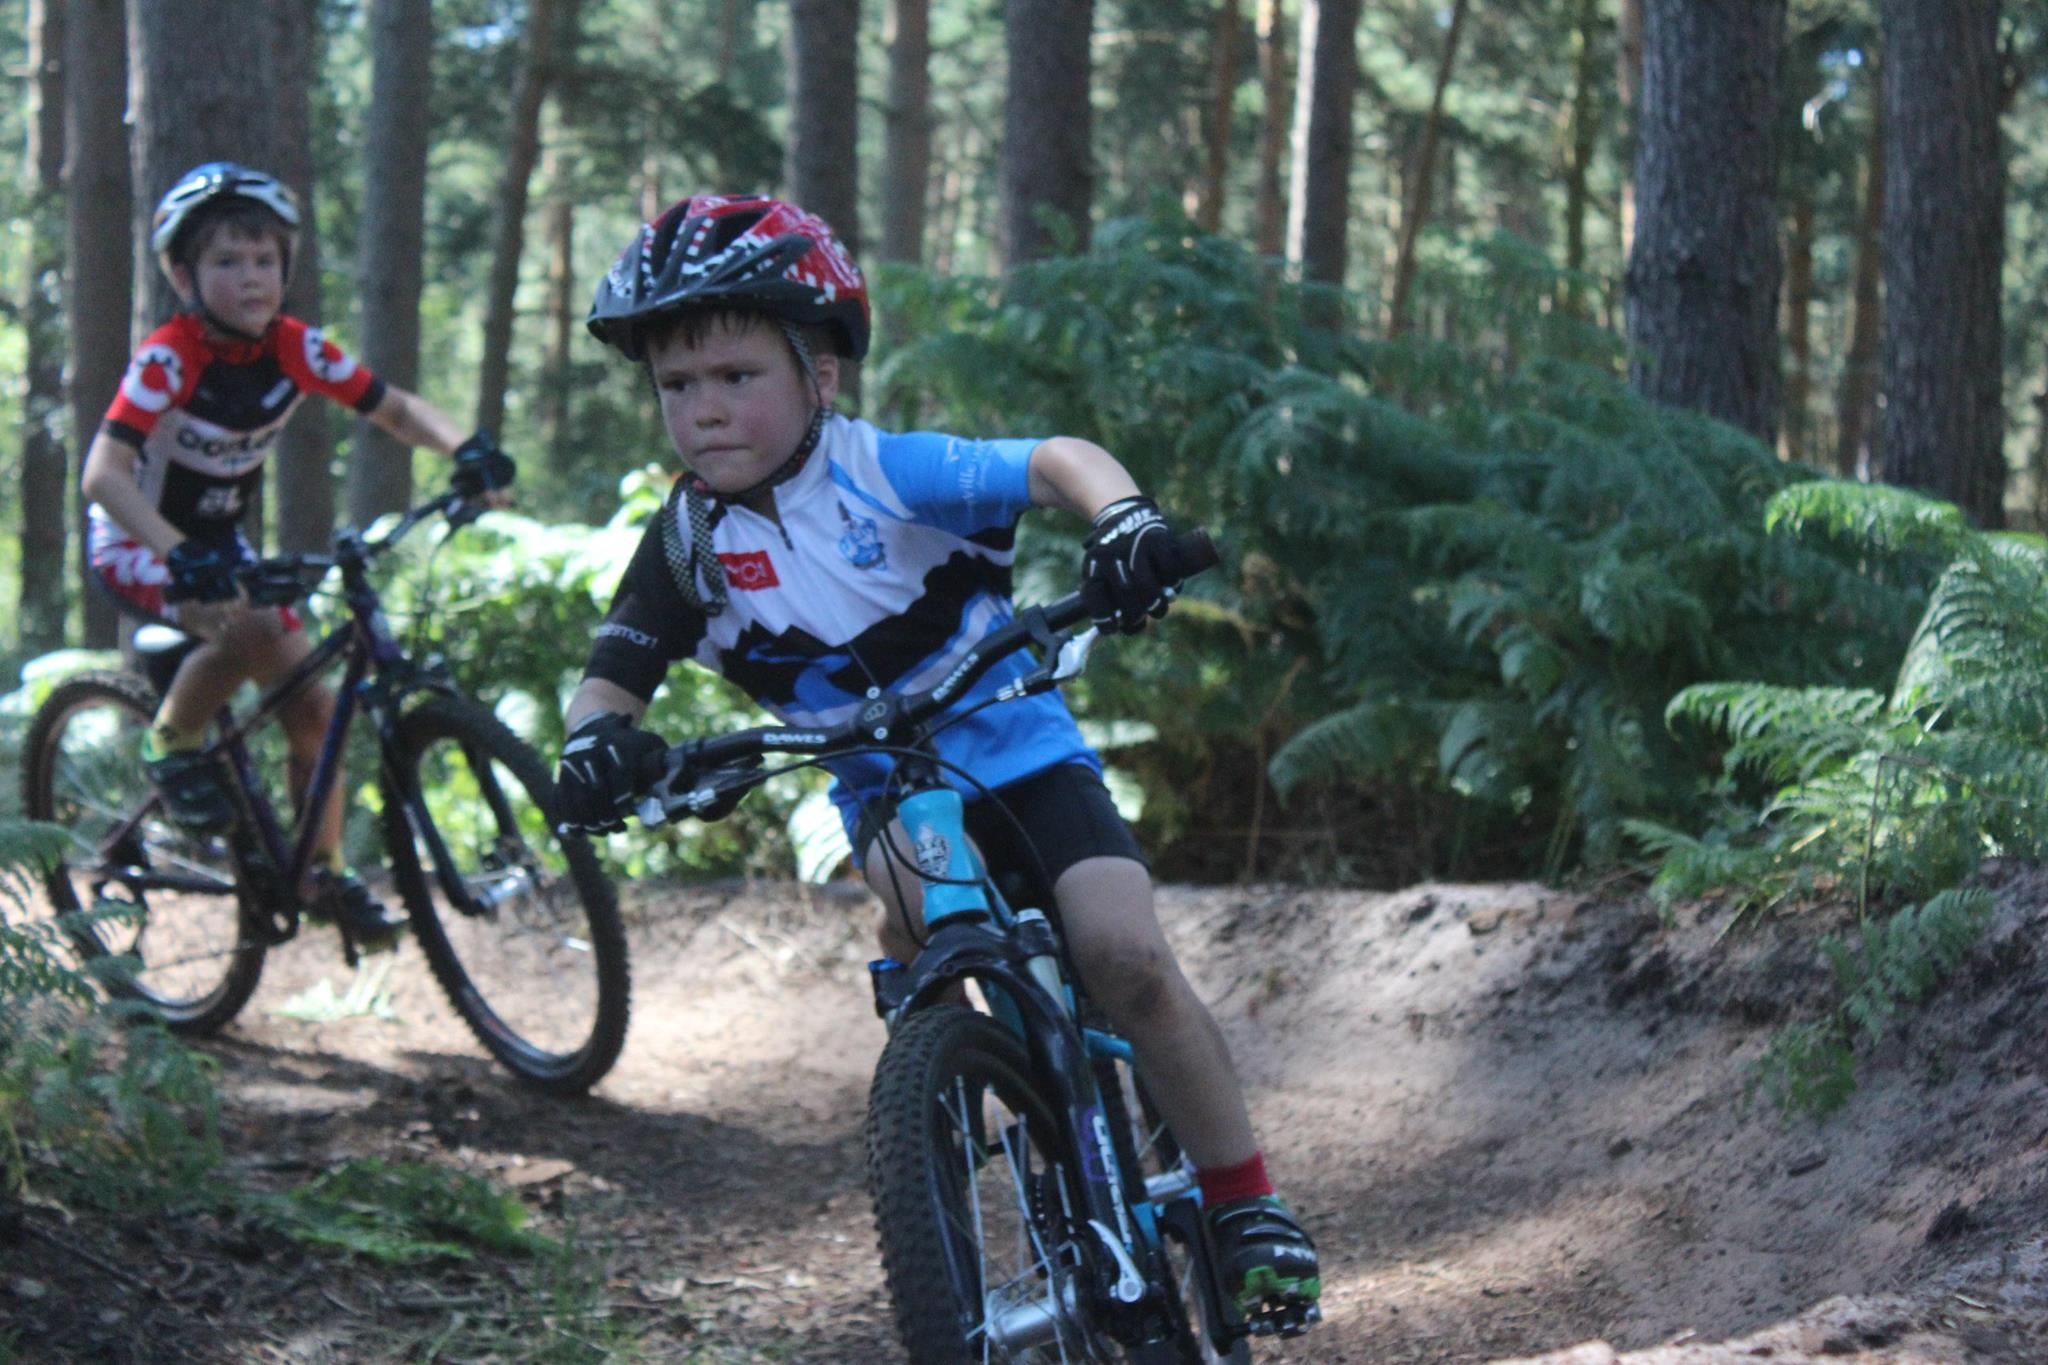 Kids Holiday Club - MTB Trail Ride, Ages 8-12  Thursday 1st August, 9am to  12 noon